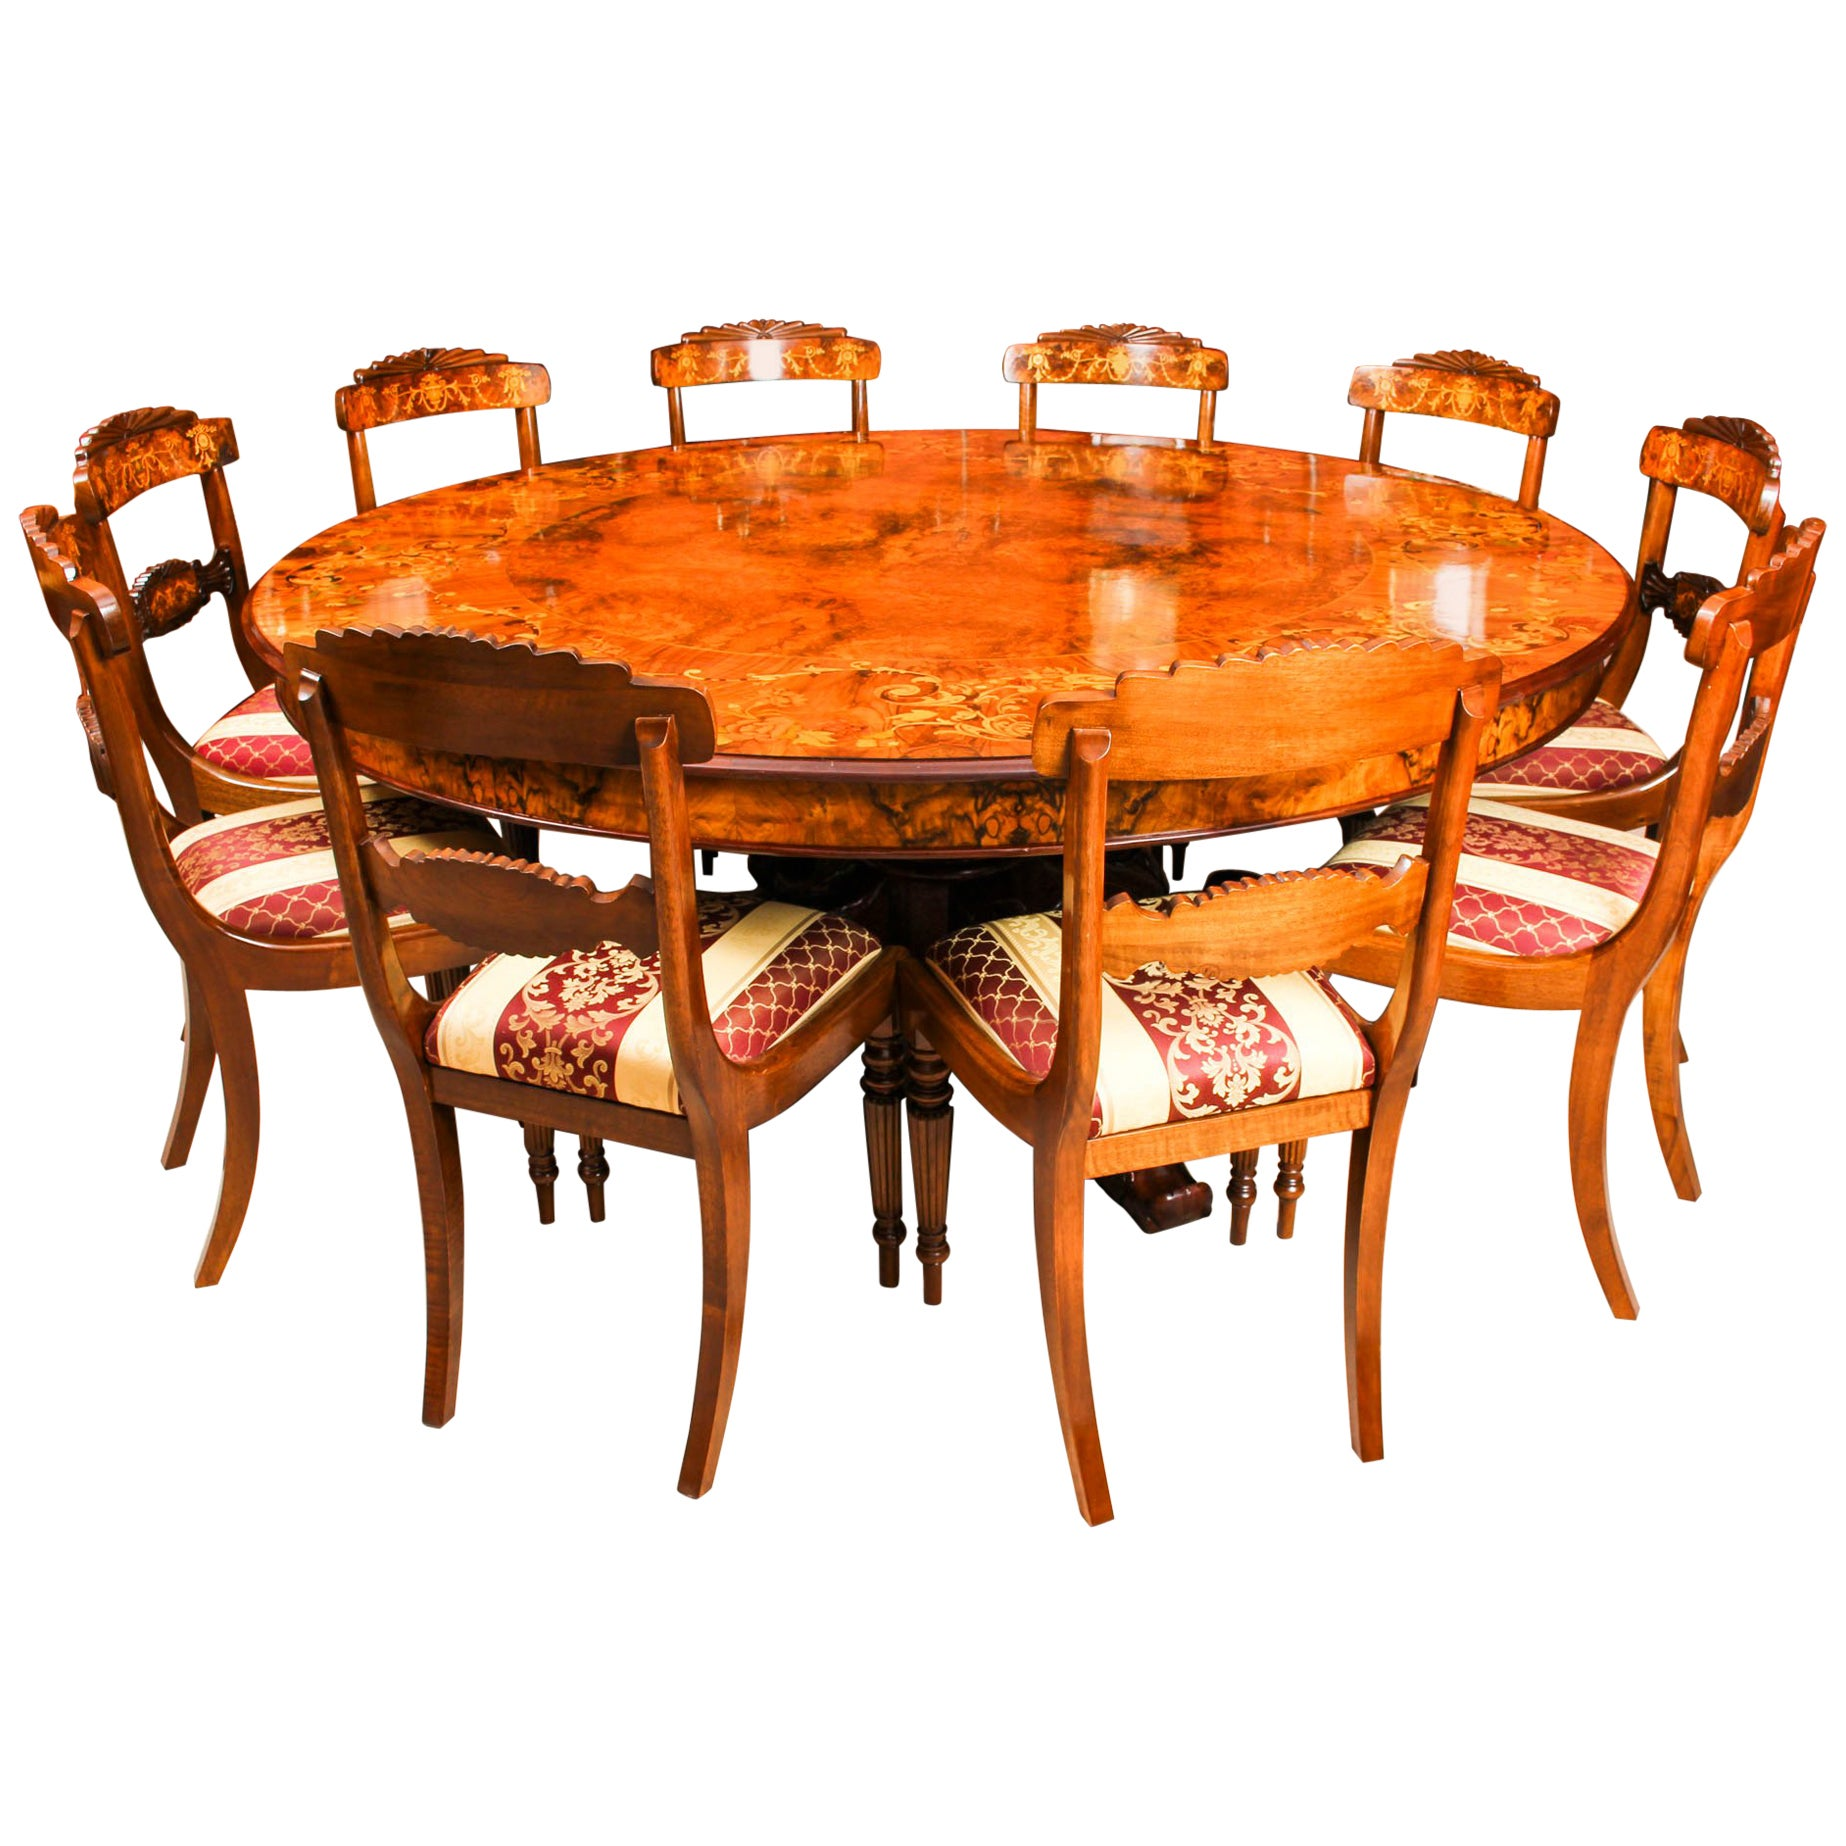 10 Seat Dining Table Set Vintage Round Marquetry Dining Table 10 Chairs